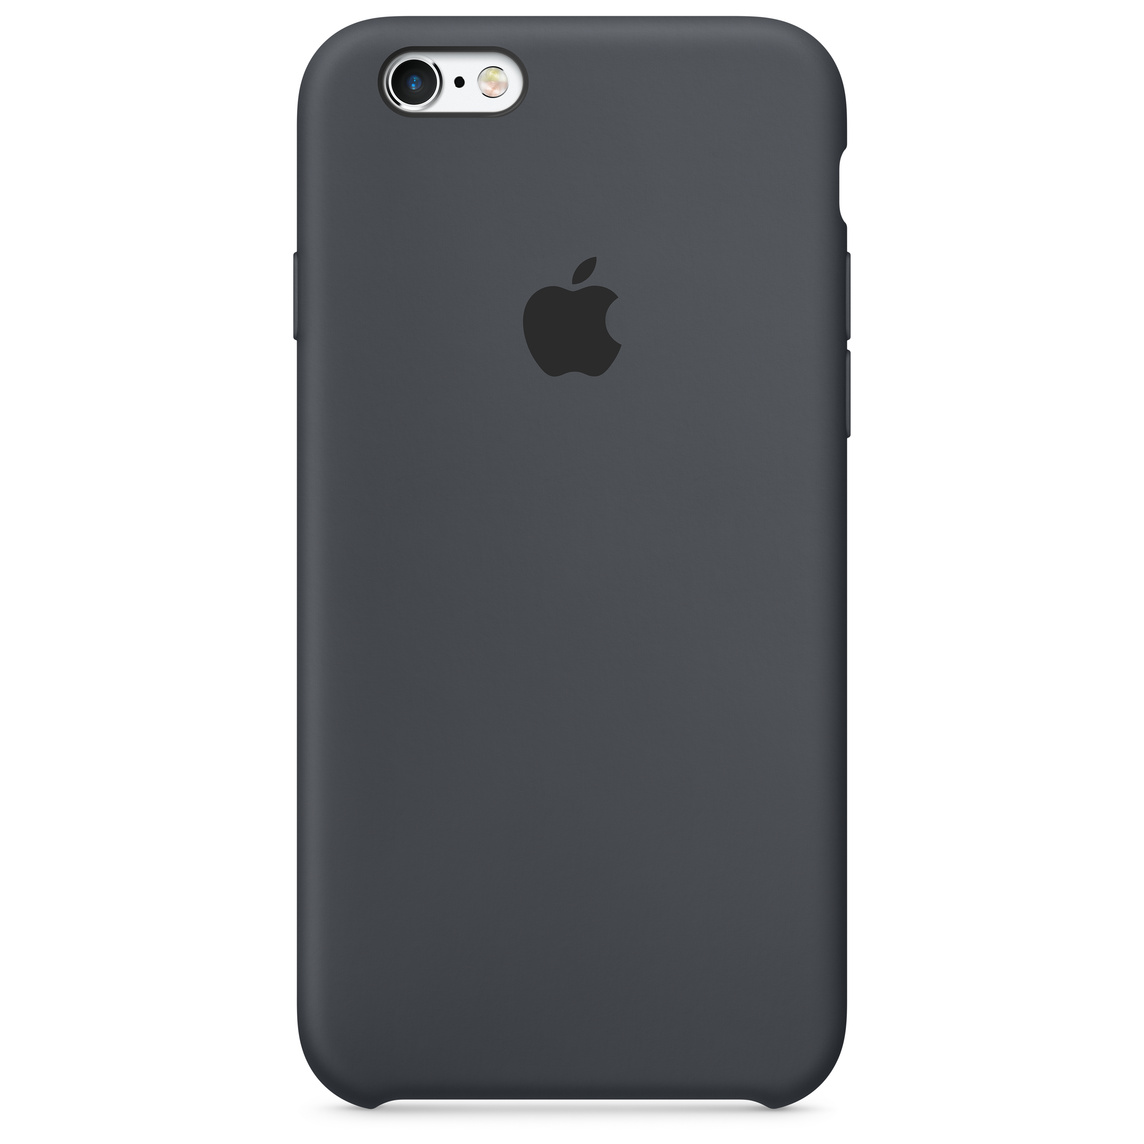 san francisco 8ca90 1f369 iPhone 6 / 6s Silicone Case - Charcoal Grey